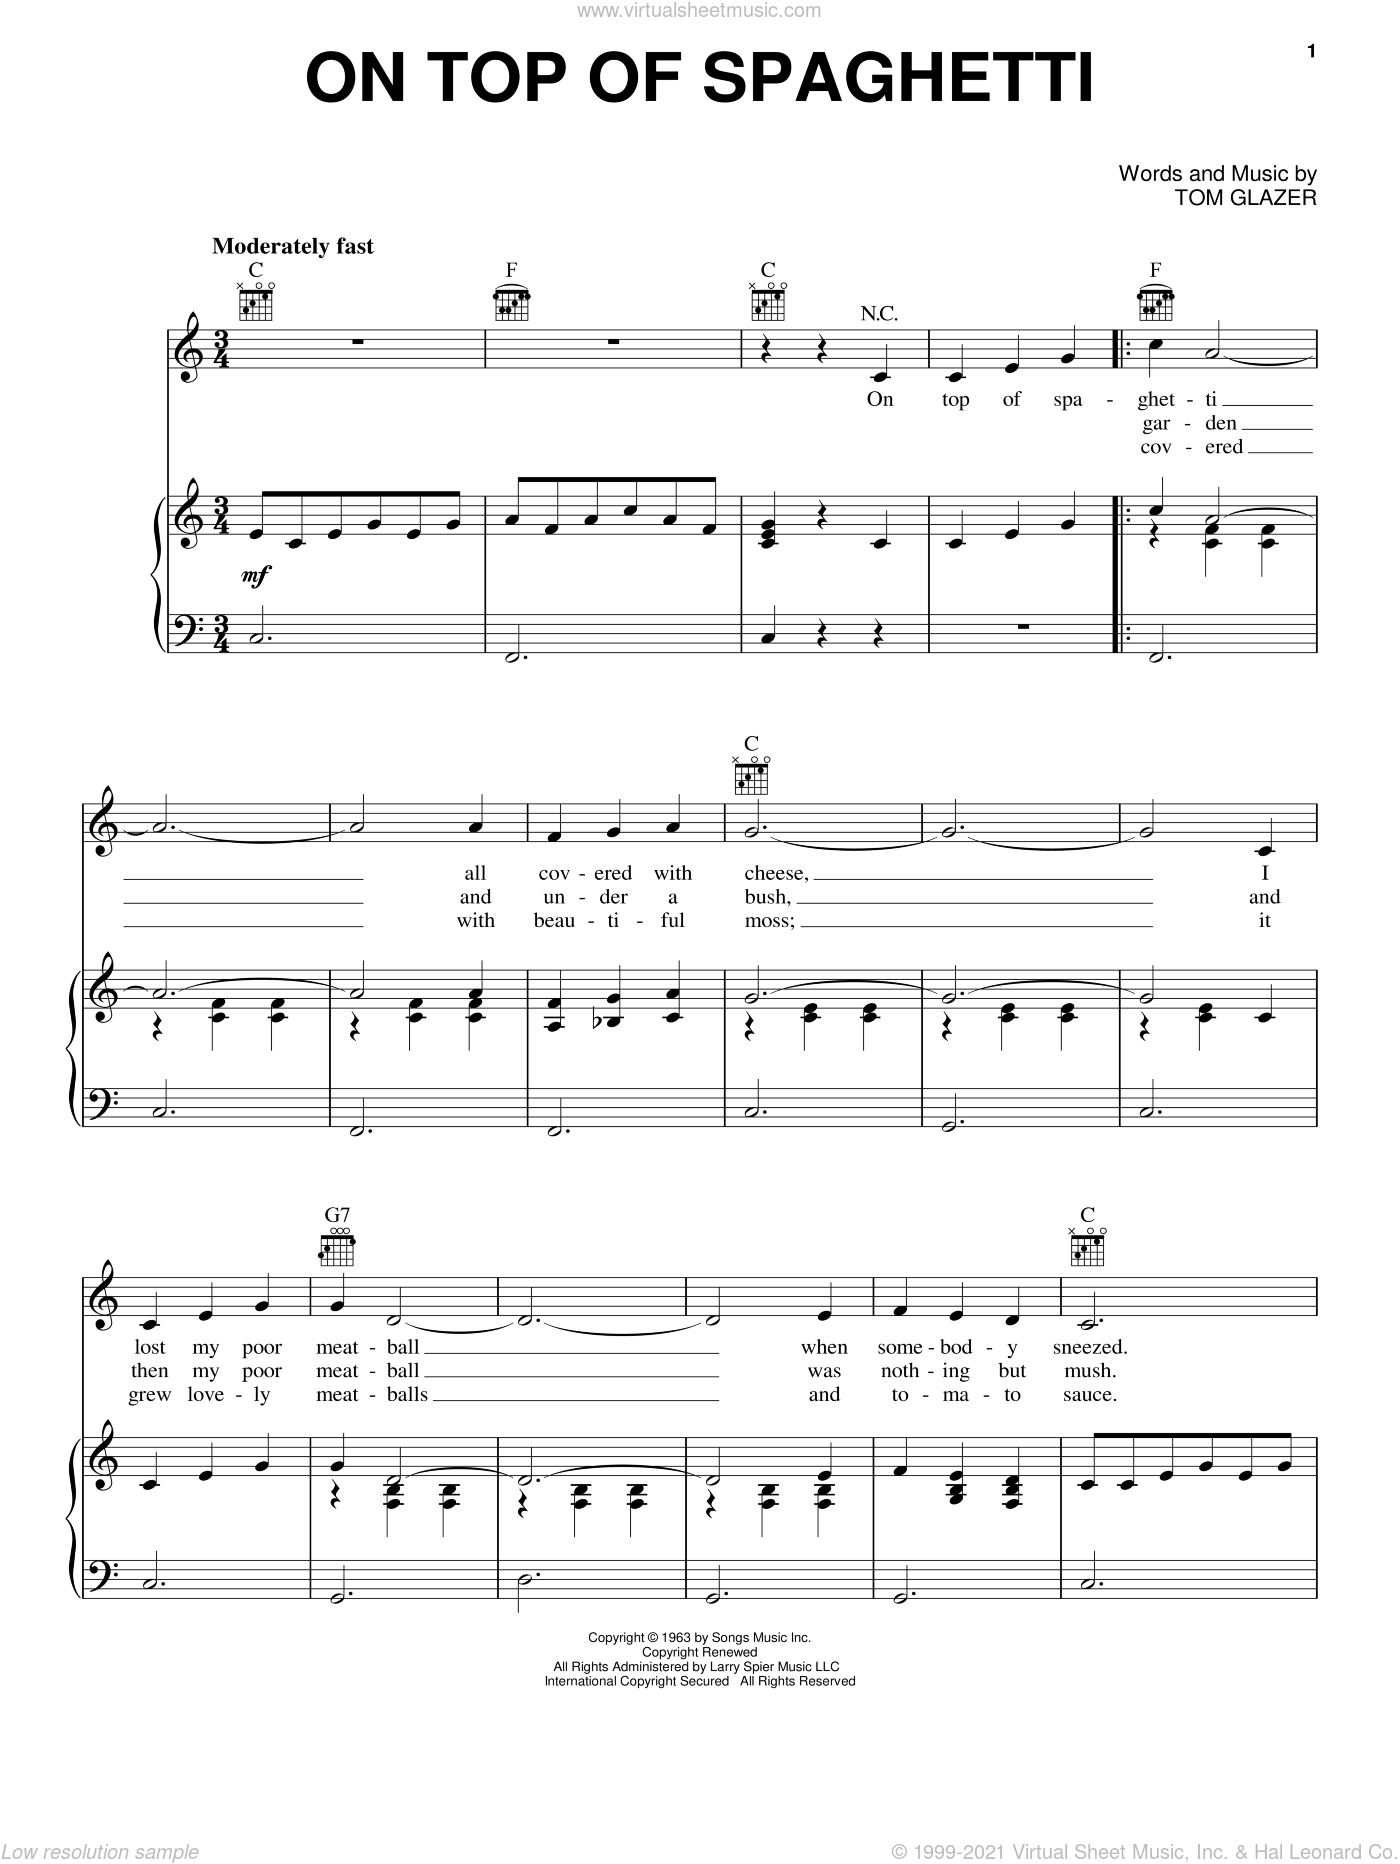 On Top Of Spaghetti sheet music for voice, piano or guitar by Tom Glazer. Score Image Preview.